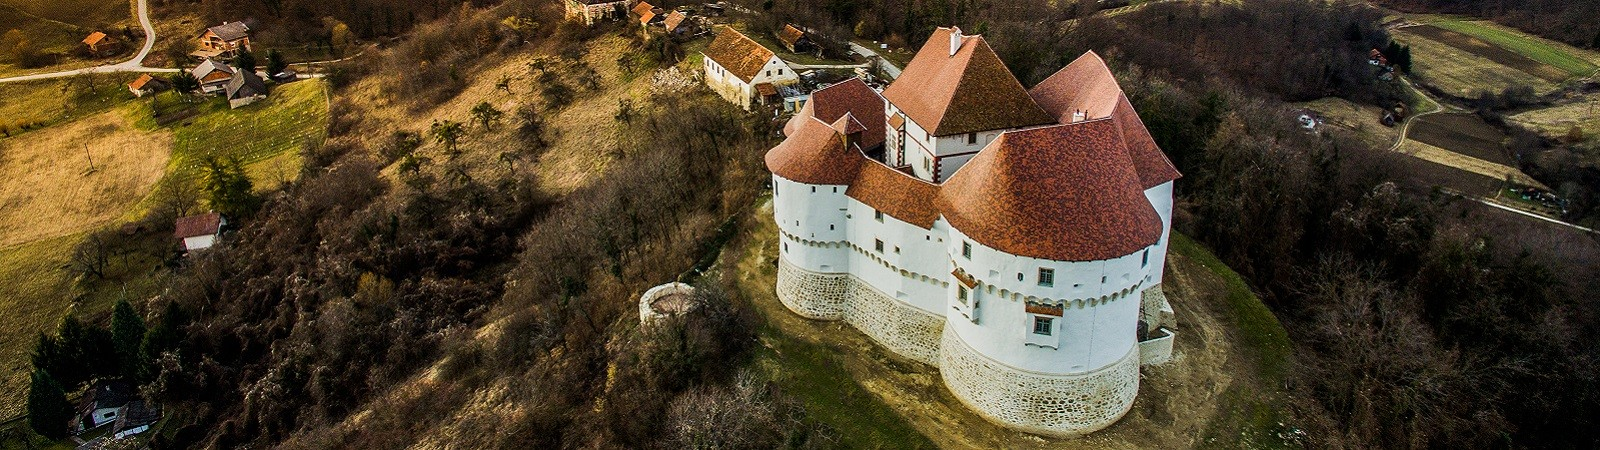 Visit Zagreb, the capital of Croatia, explore numerous castles and get to know Croatia sights